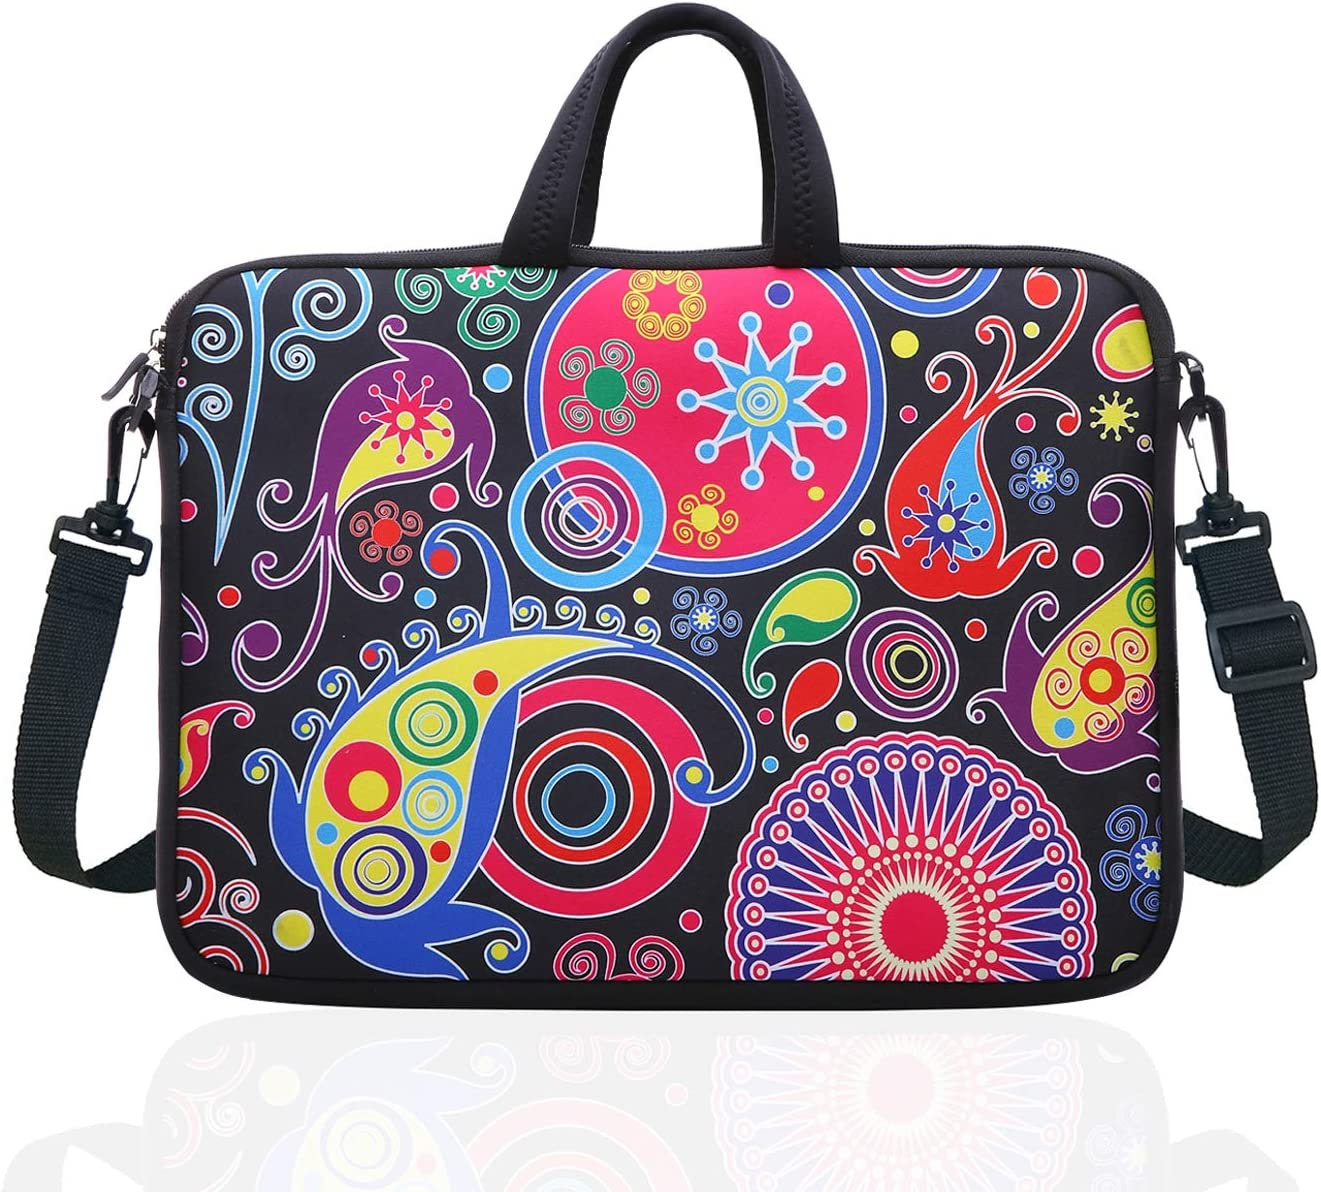 Neoprene Sleeve Laptop Handle Bag Handbag Notebook Case Cover Rainbow and Star Portable MacBook Laptop//Ultrabooks Case Bag Cover 15 Inch